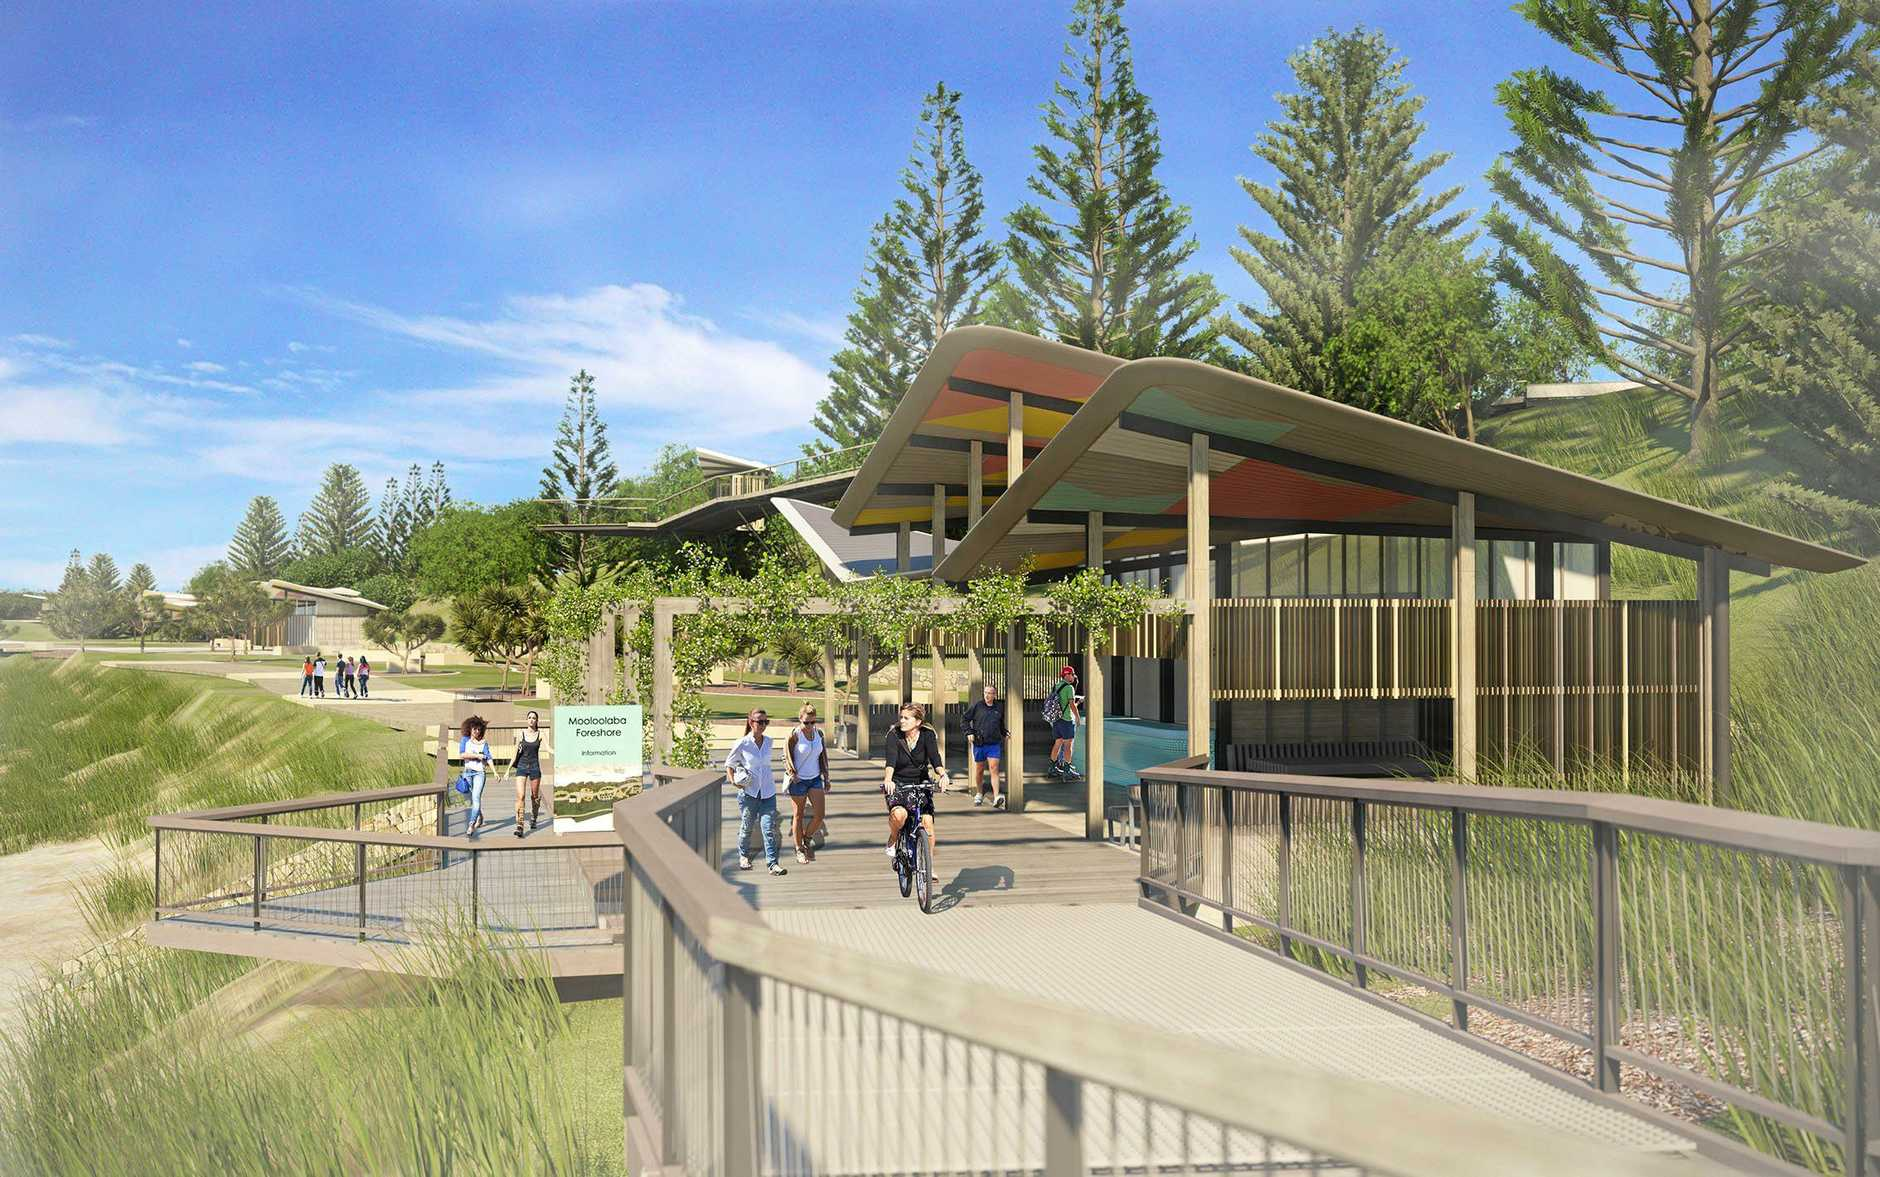 New artist impressions of the foreshore at Mooloolaba beach, released as work on the Place Making Mooloolaba Master Plan.